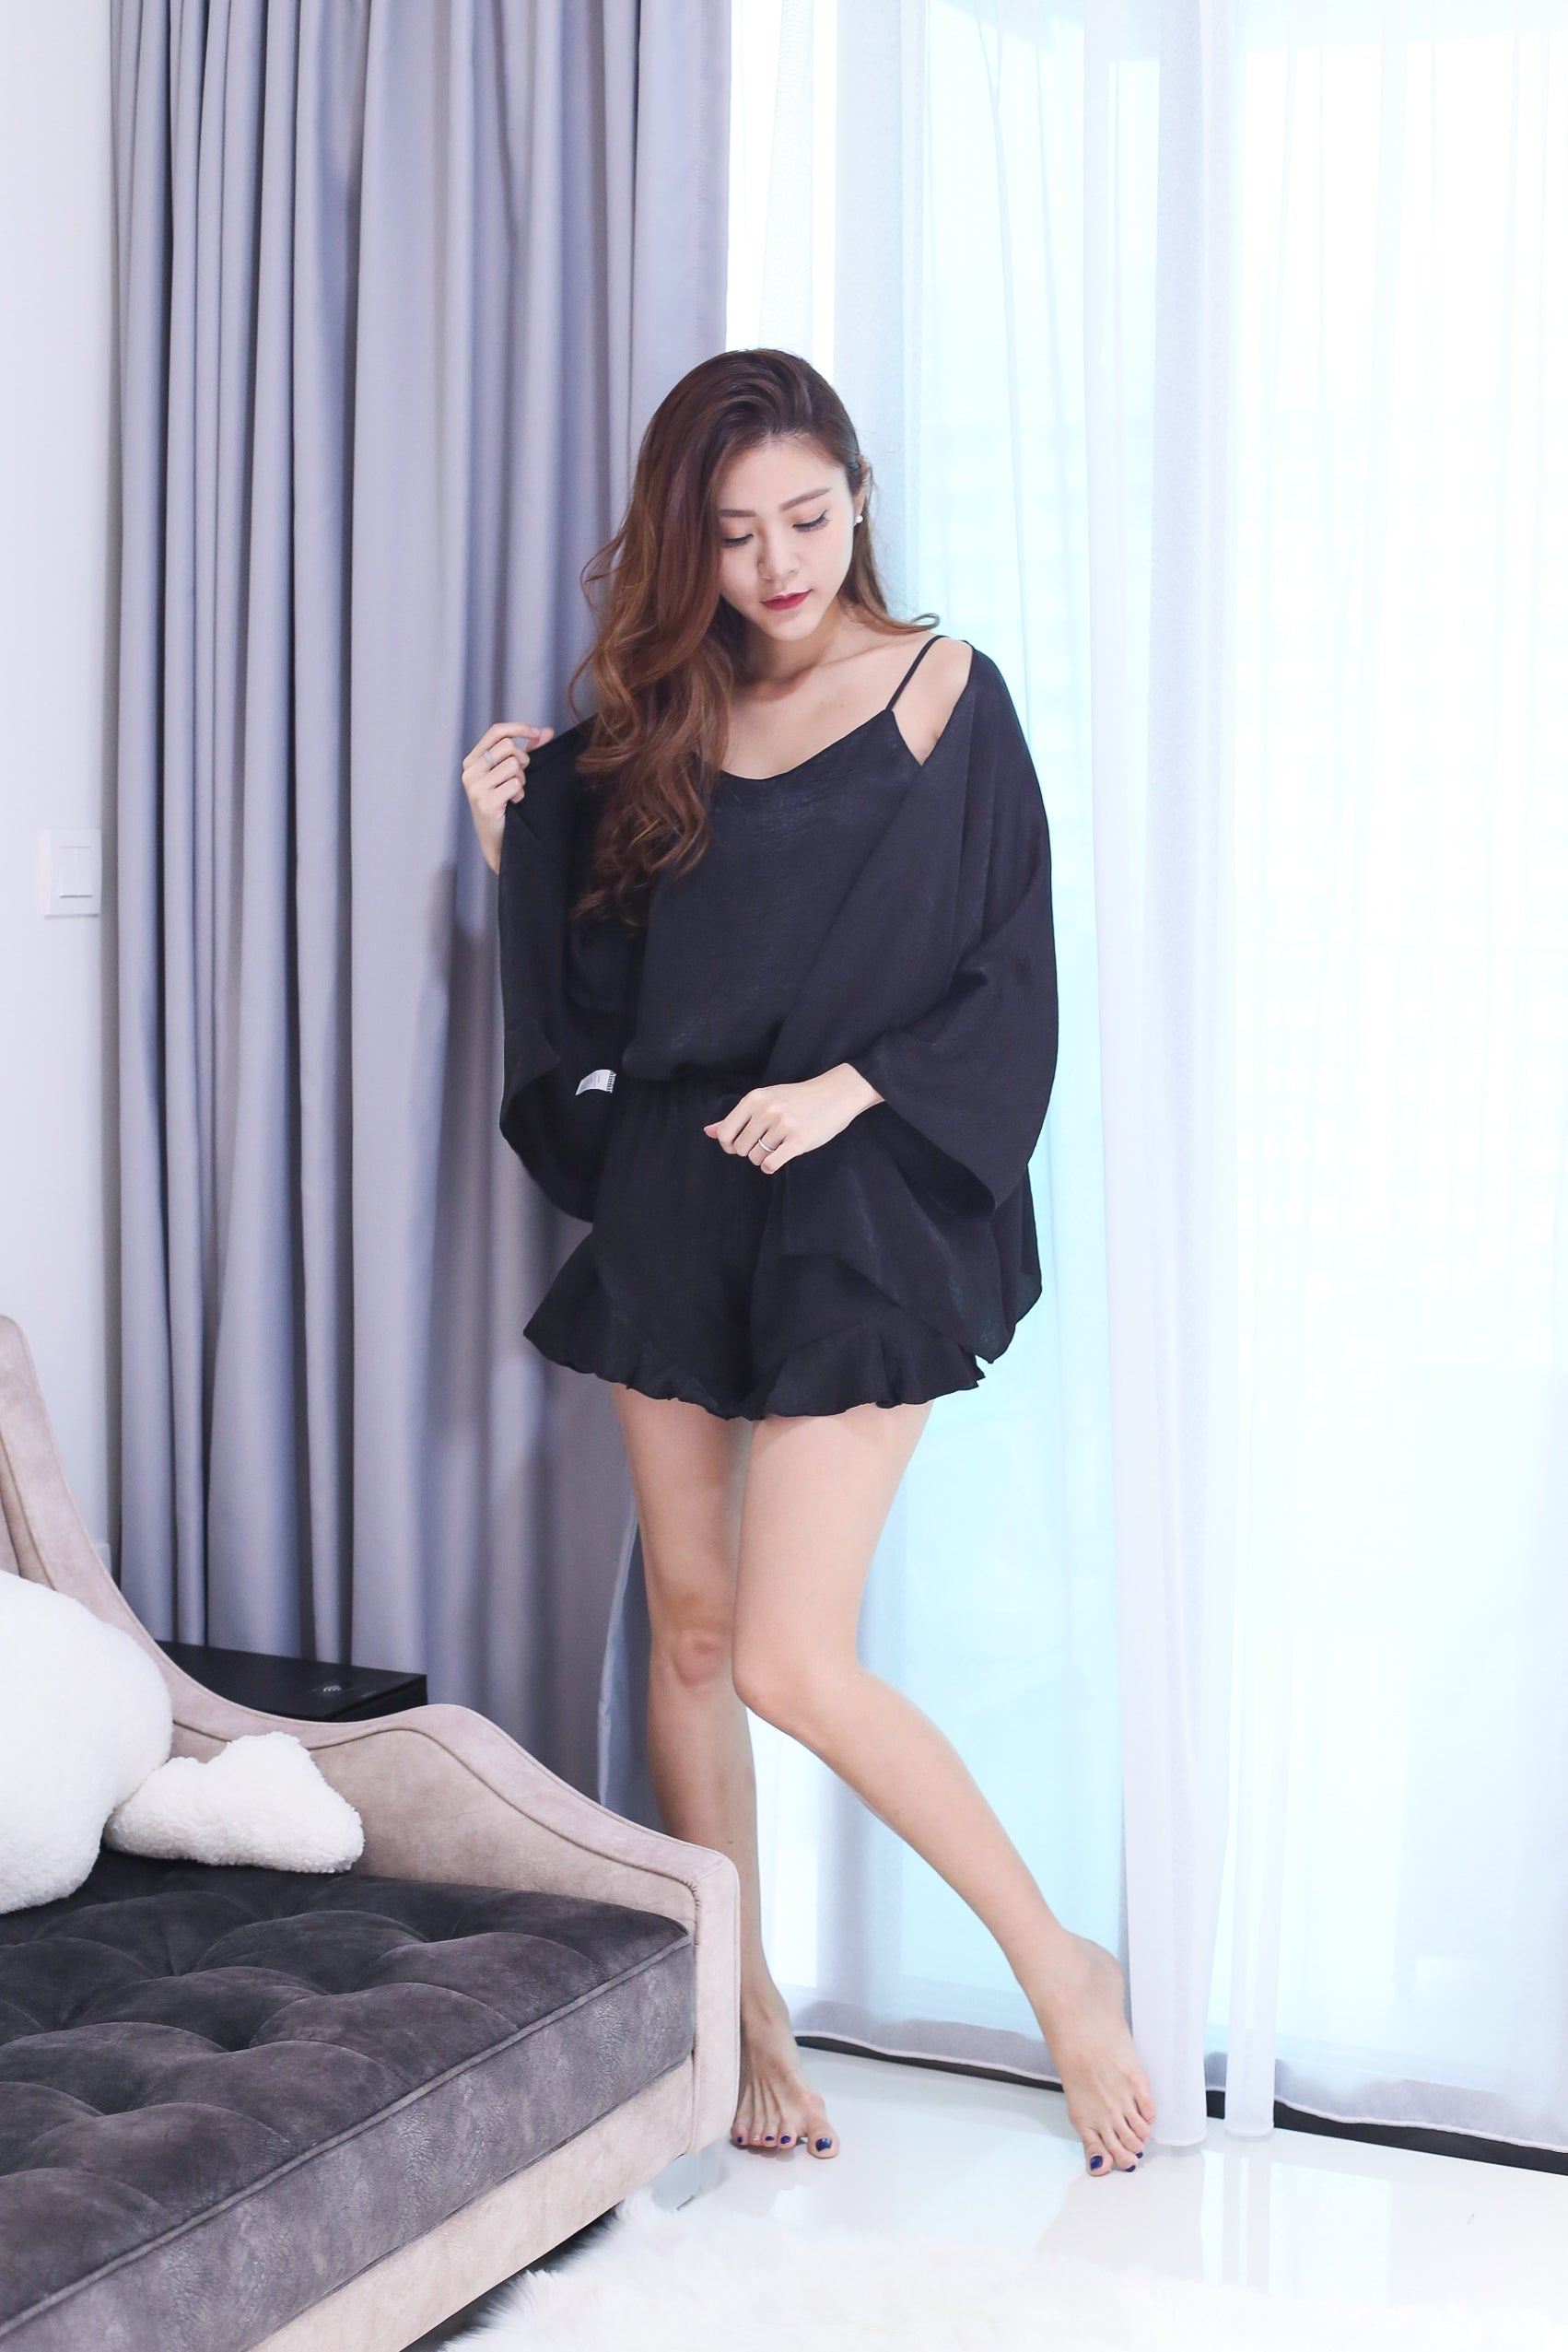 *RESTOCKED* VICTORIA 3 PC SLEEPWEAR SET IN BLACK